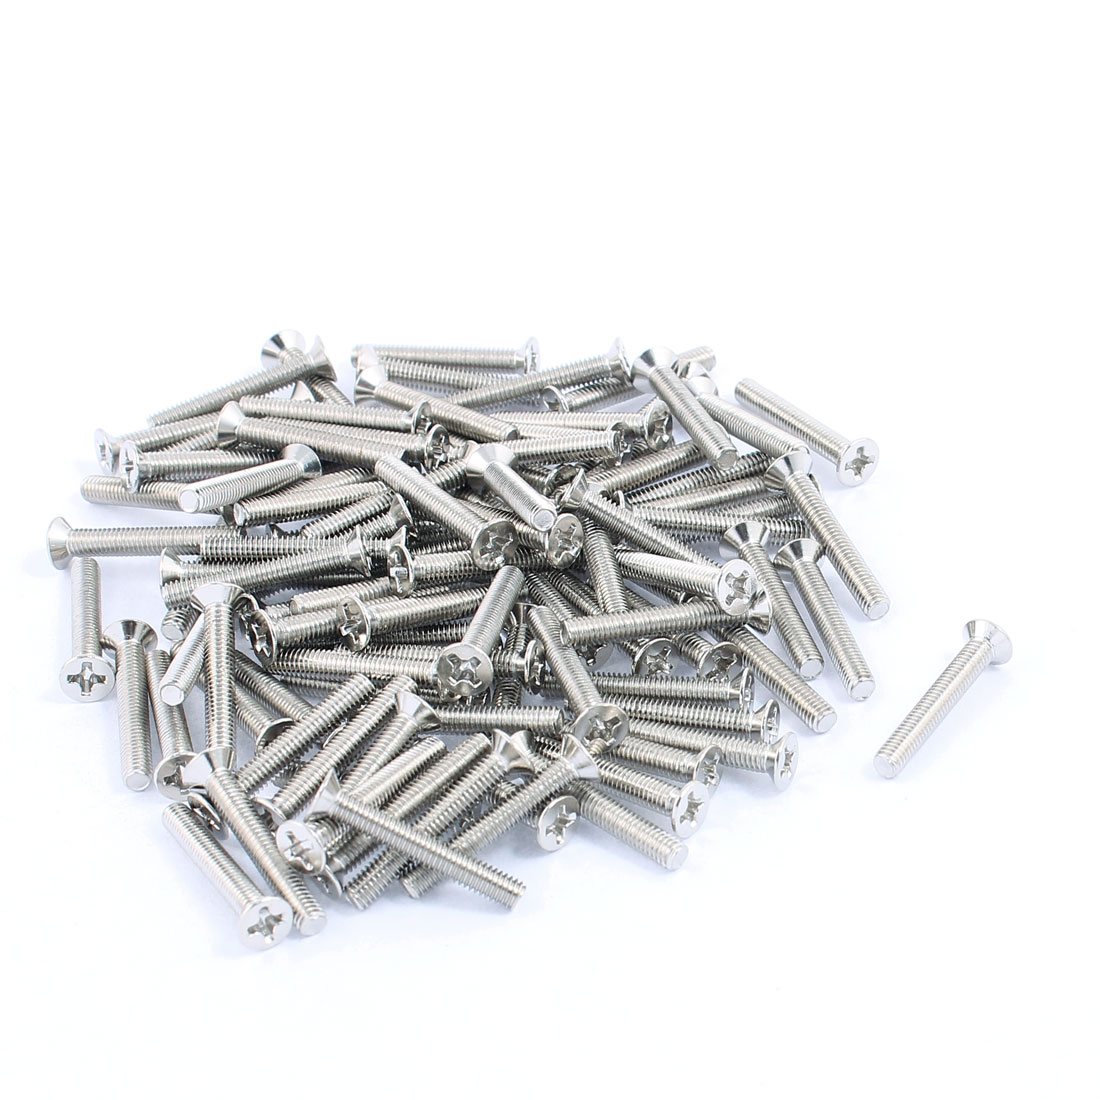 M3x20mm Stainless Steel Phillips Flat Countersunk Head Machine Screws Bolts 100pcs